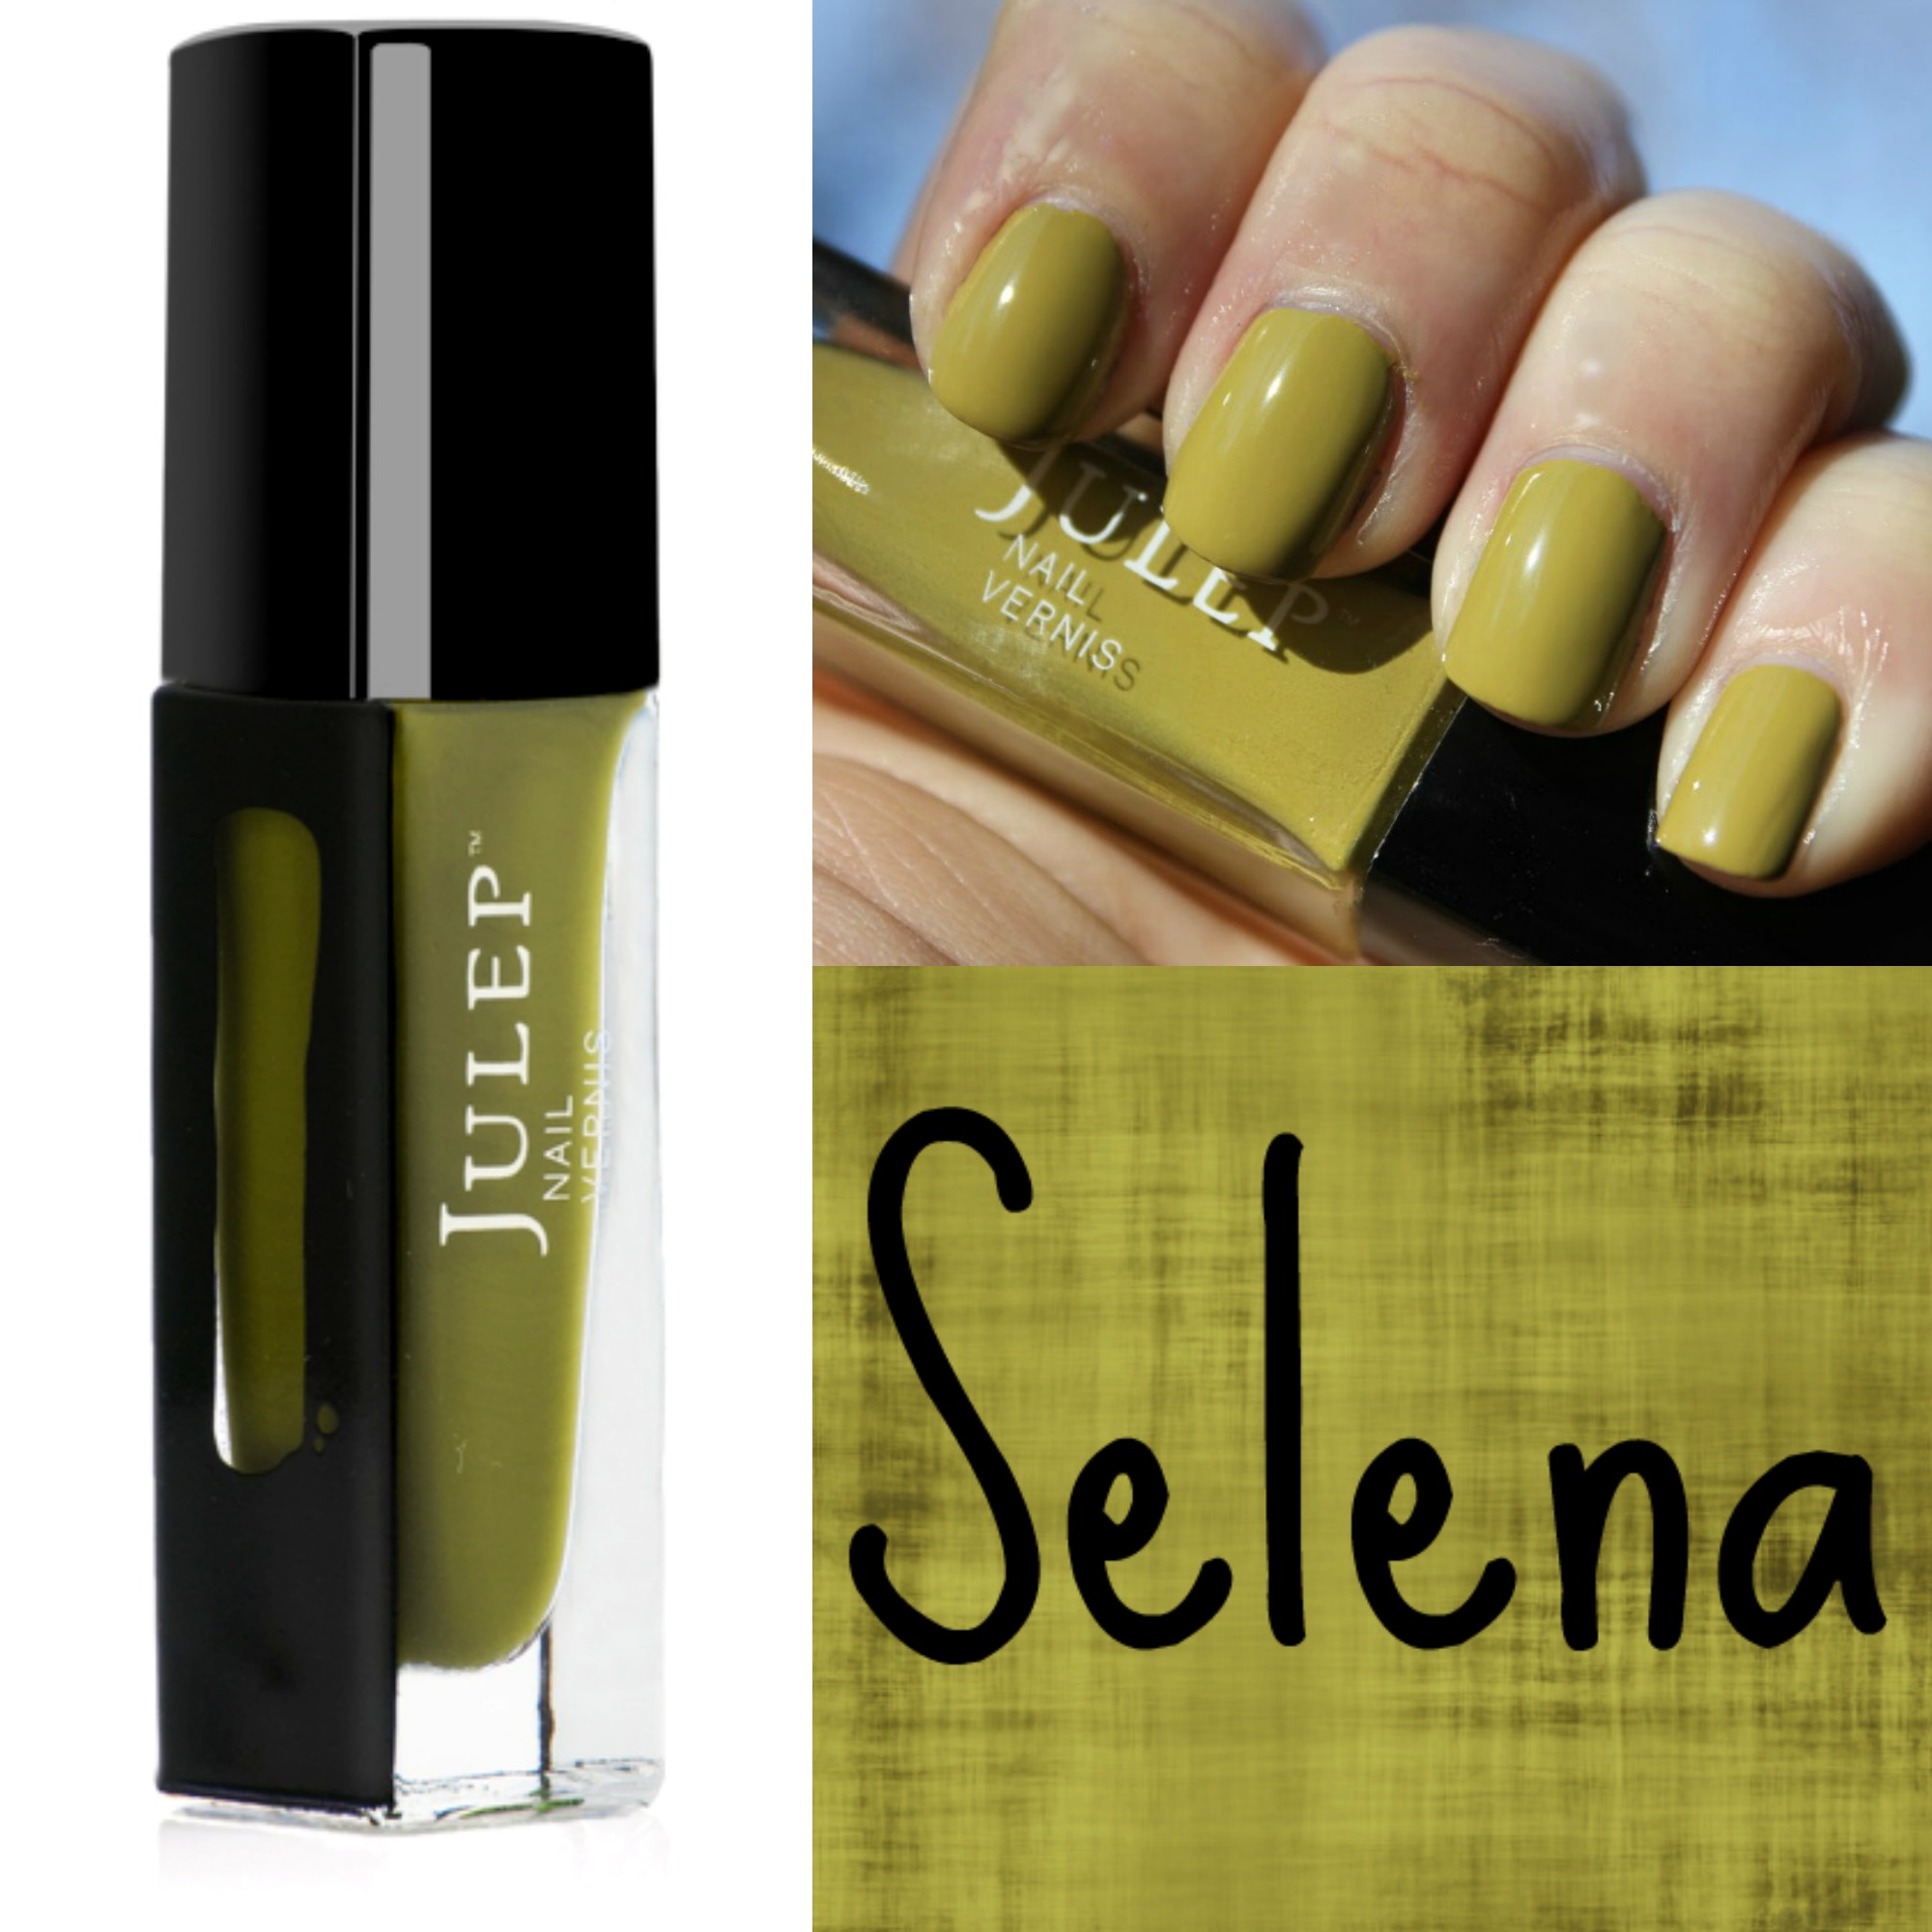 Julep - Nail Varnishes in Amy, Charlotte, Colbie, Julianne, Selena ...